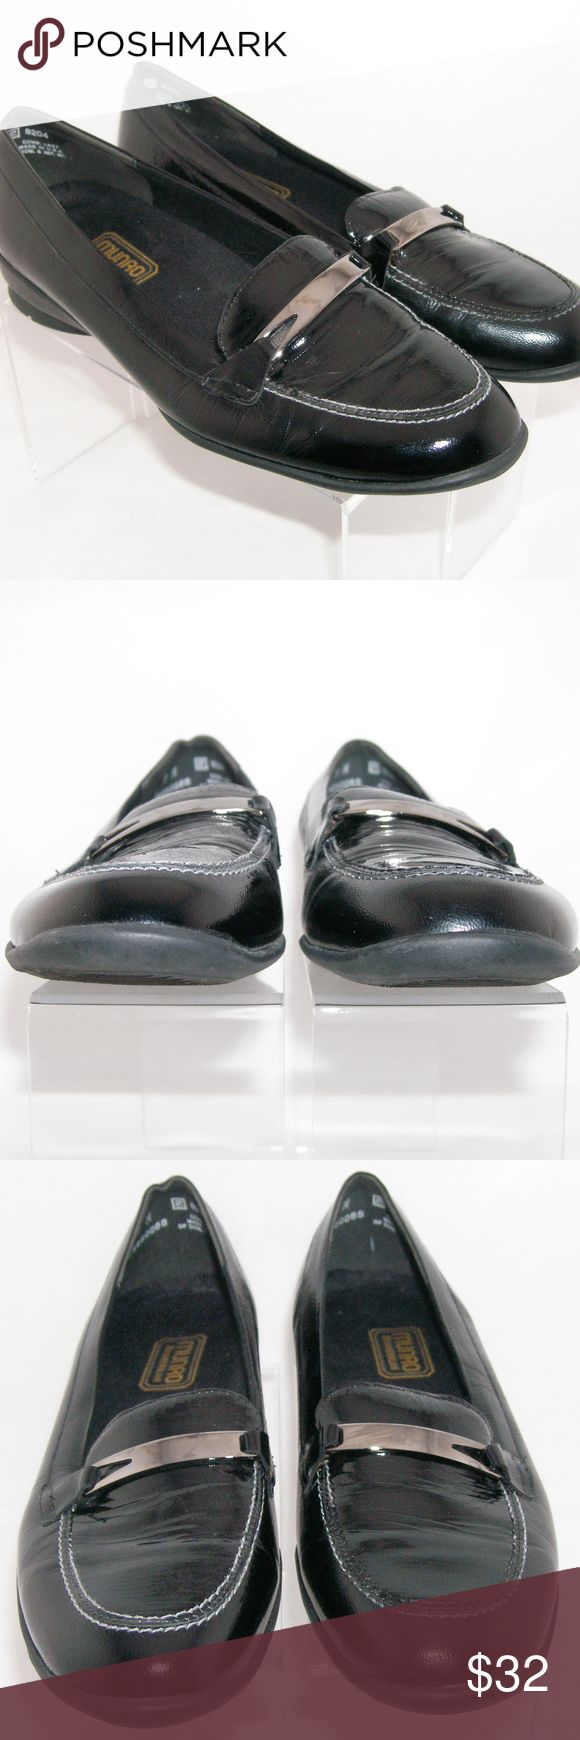 """Munro American 'Brook' leather snake loafers 9M These Munro American loafers features a leather upper, faux snake print design, rubber soles, removable inner sole, silver tone hardware, 3.5"""" width, and a 1"""" shock absorbing heel. Slightly worn upper, heel, and sole. Made in USA Munro Shoes Flats & Loafers"""